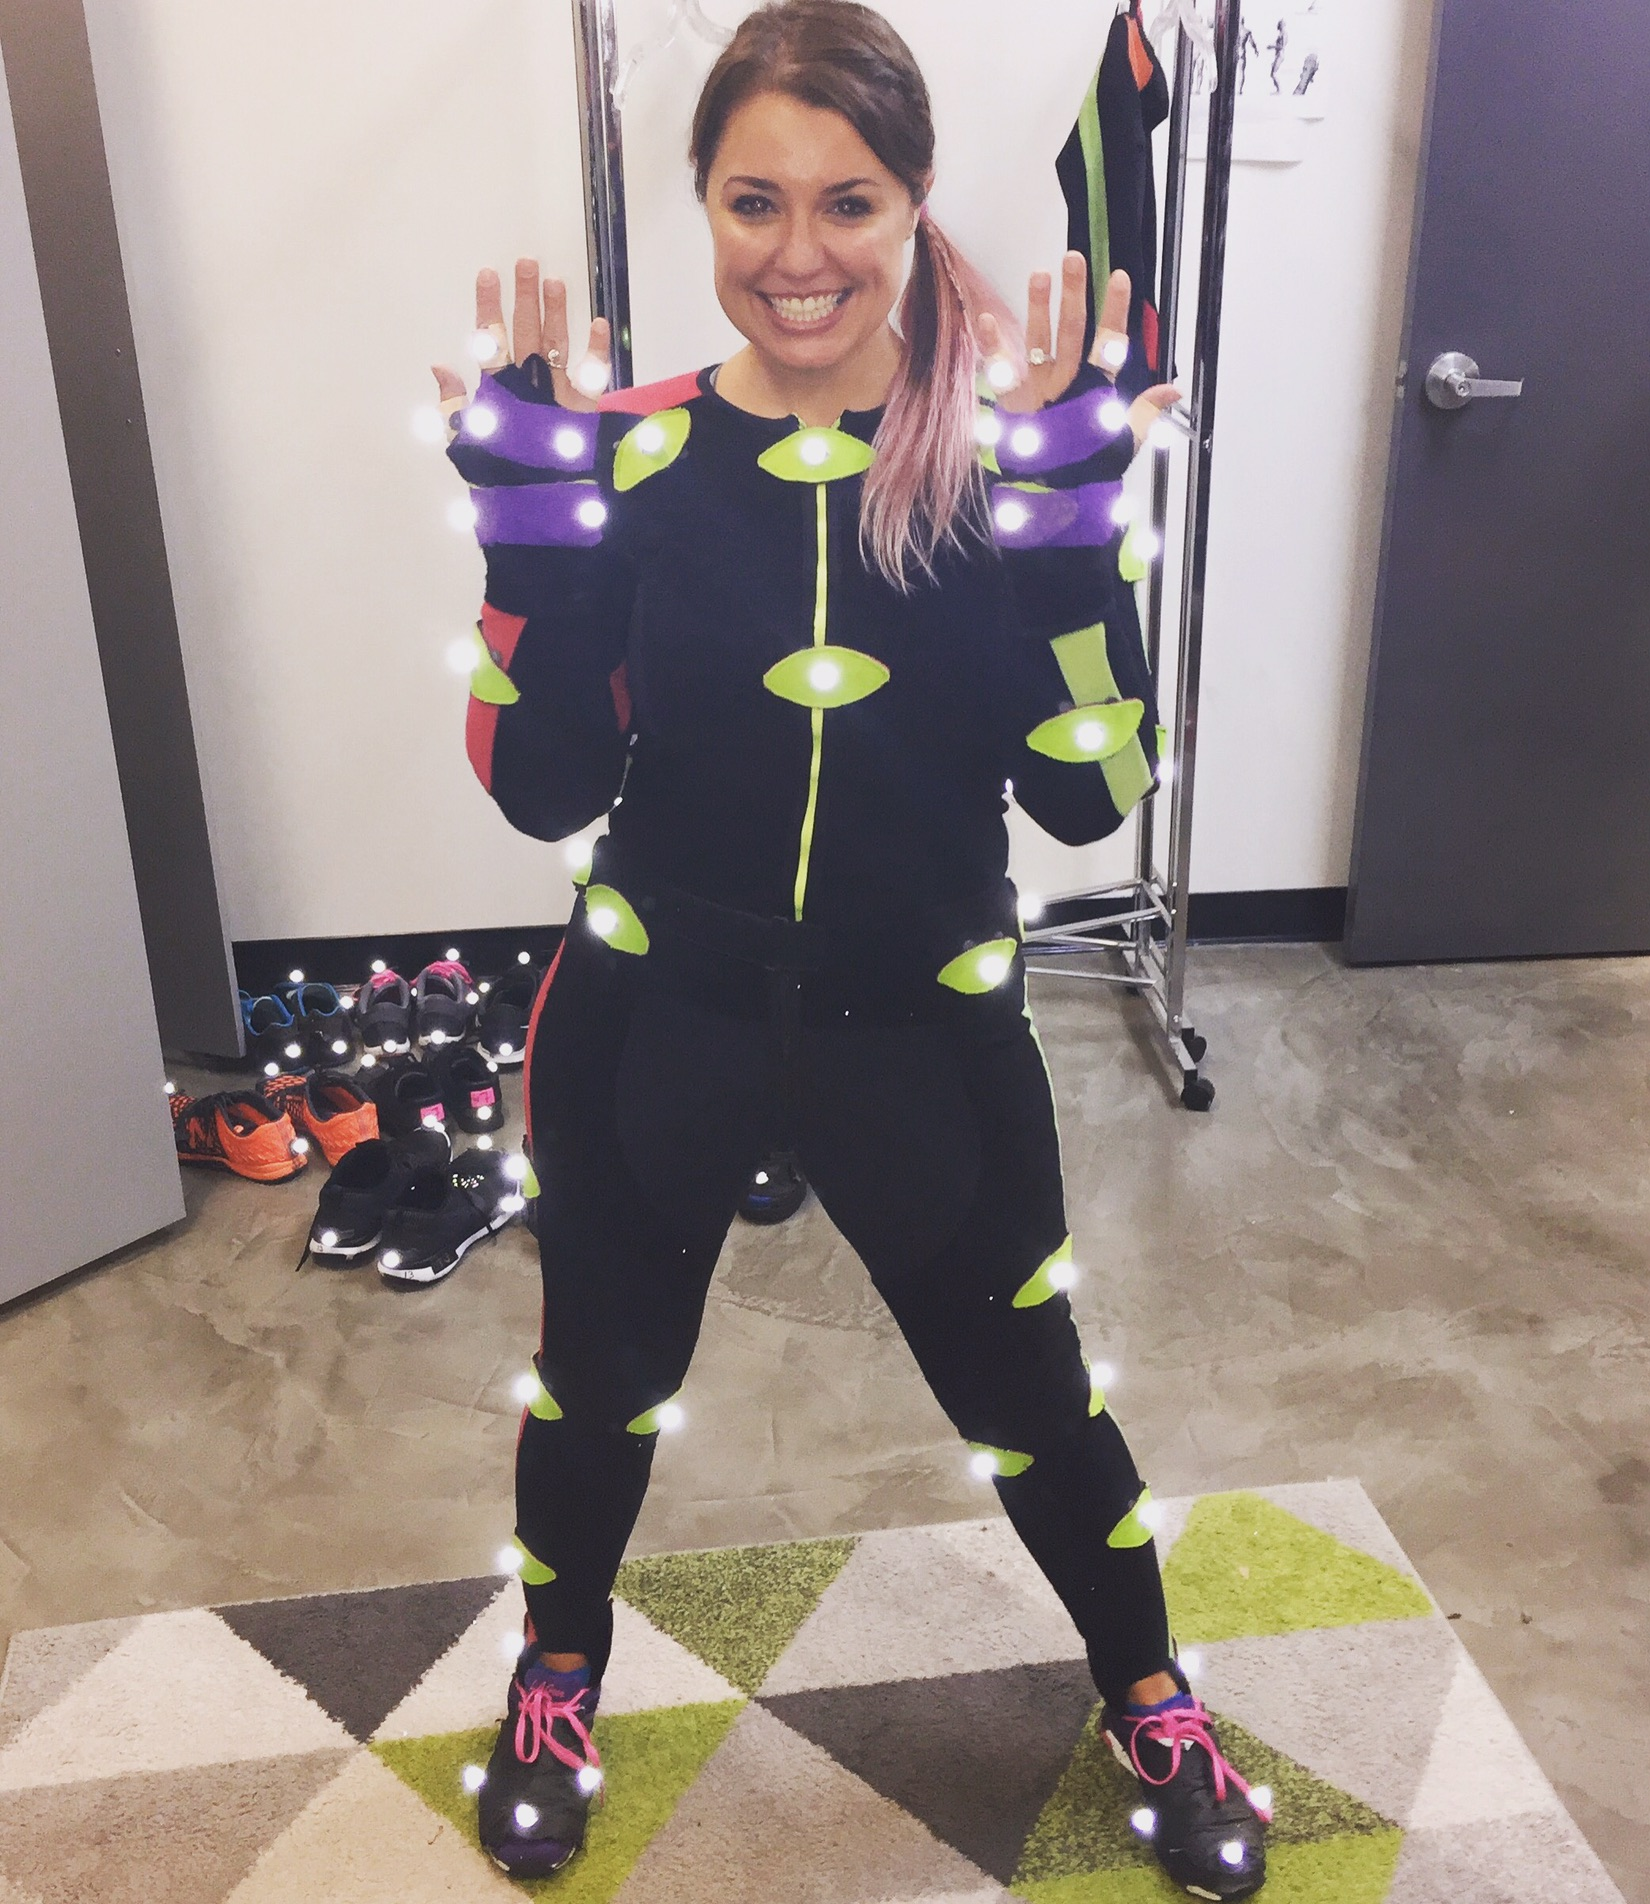 Kirsten Day performing motion capture at the House of Moves